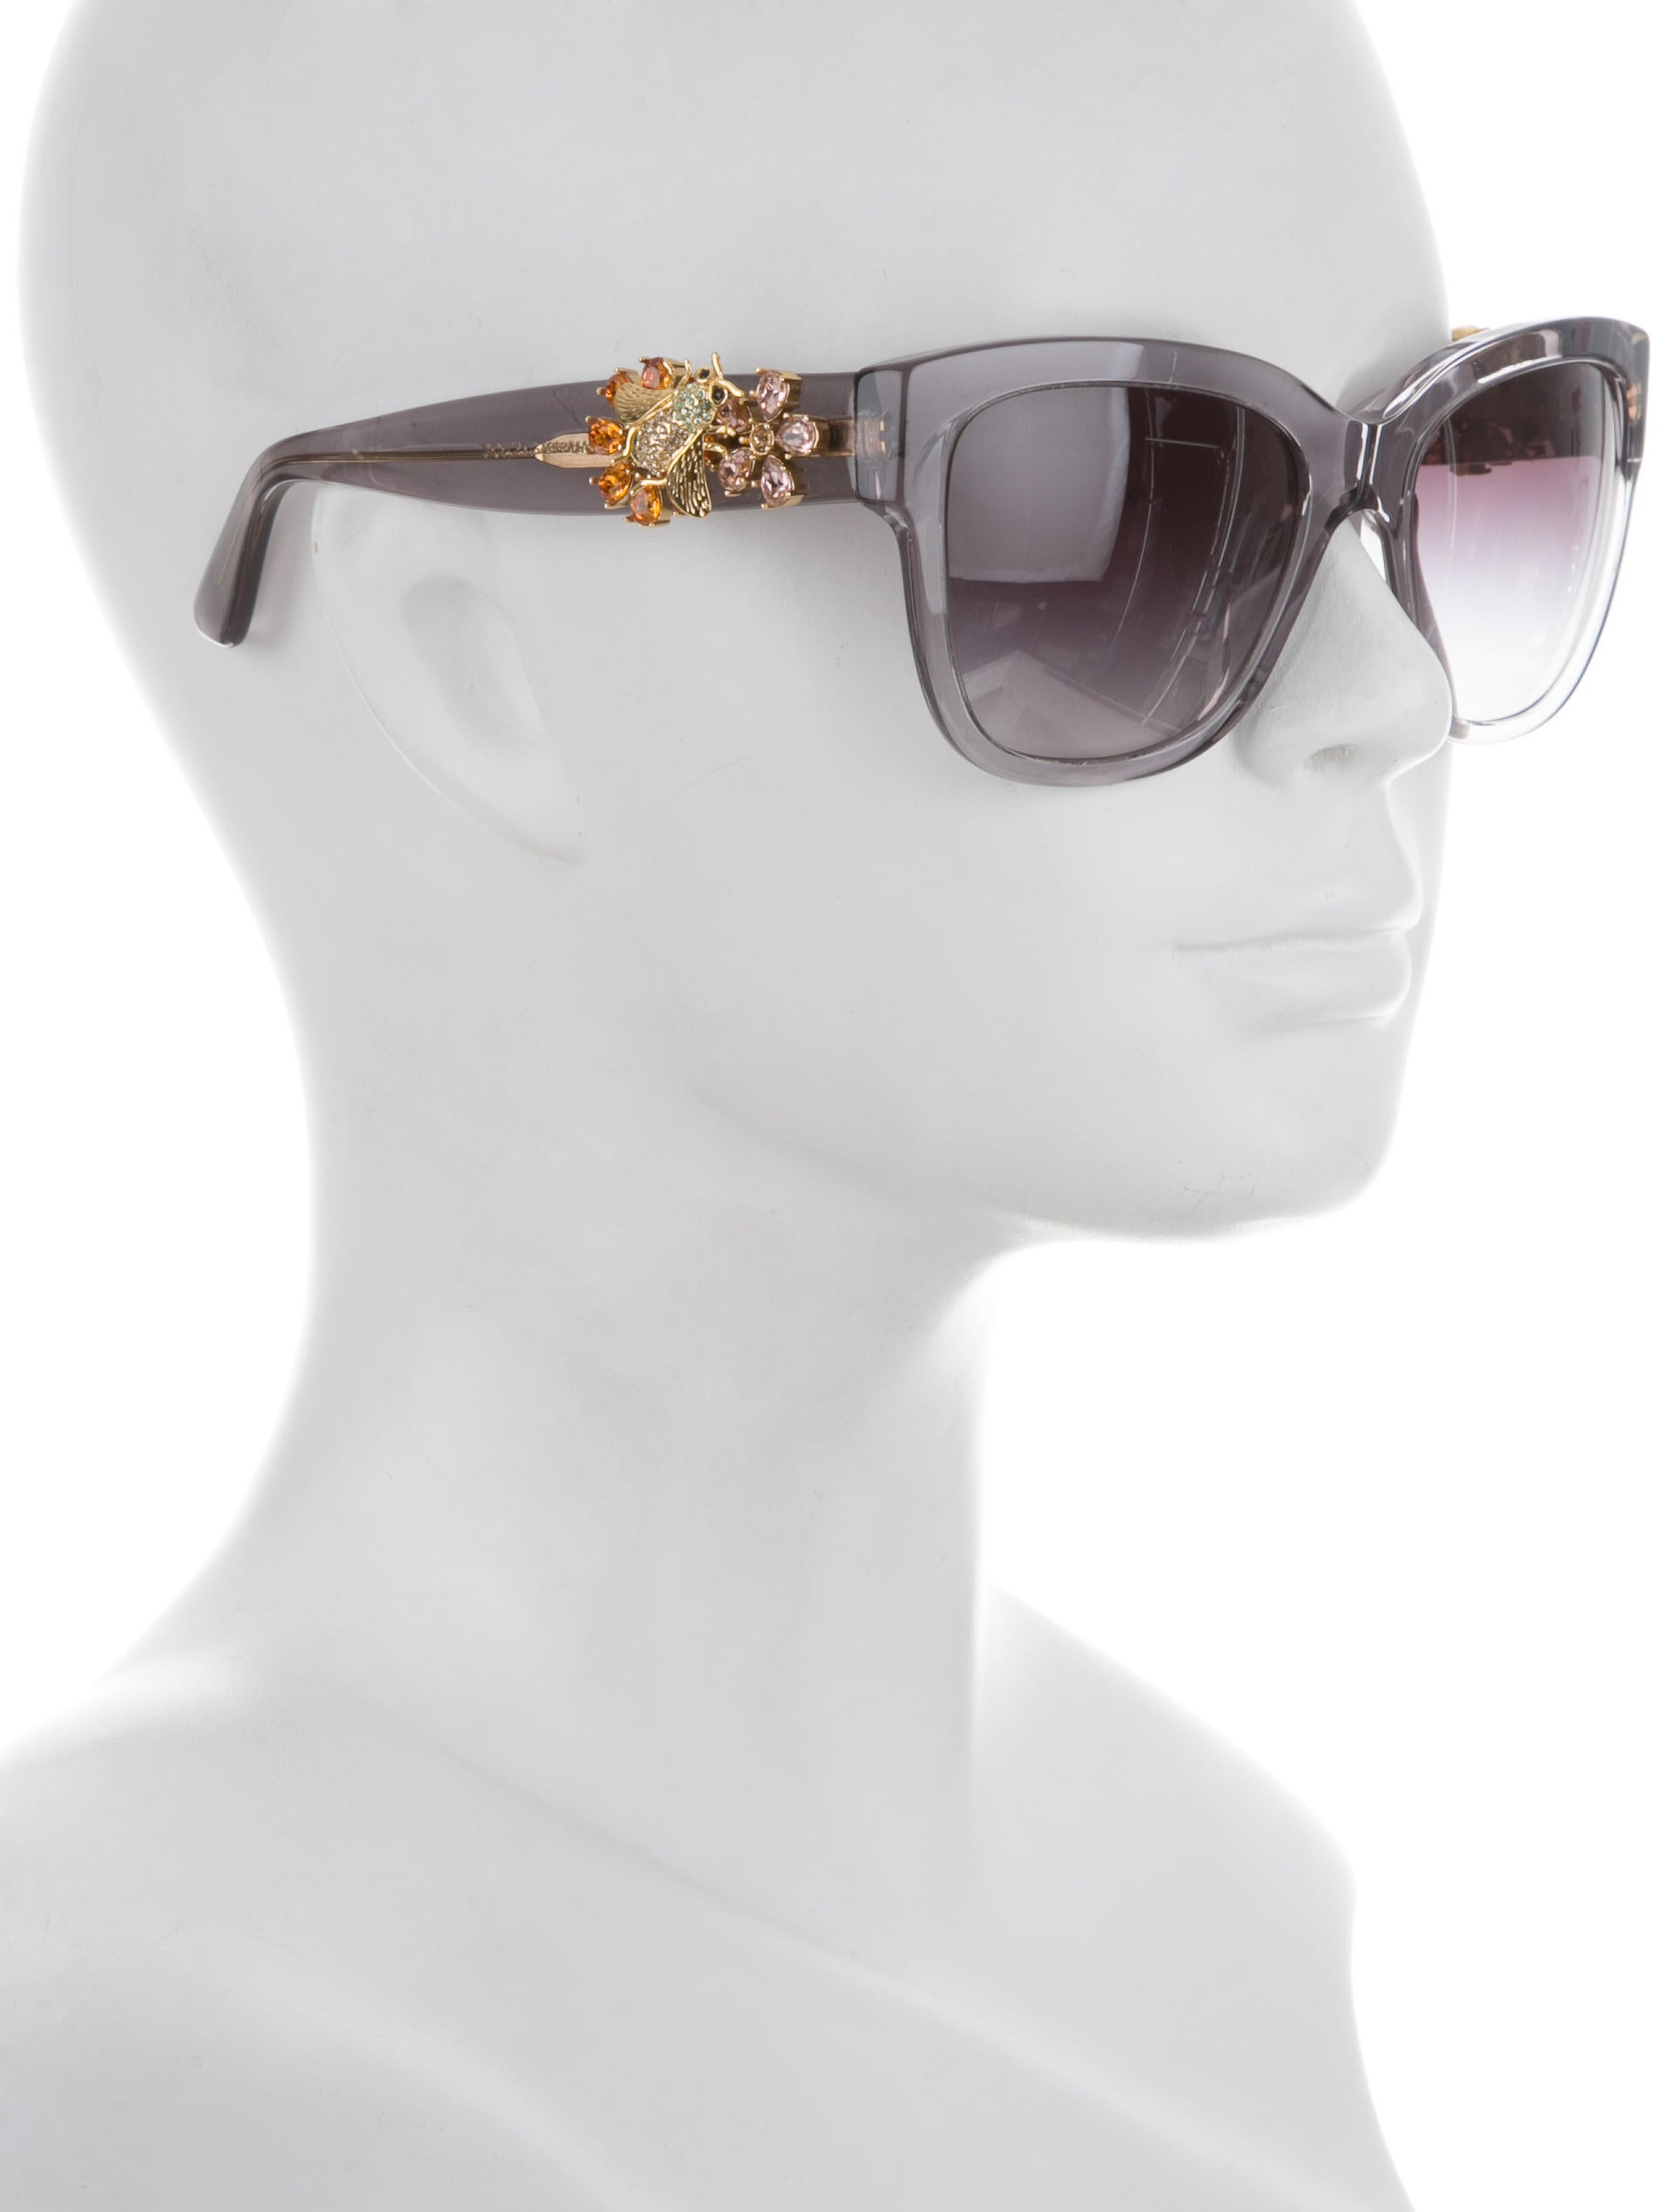 3f77e3594e0 Dolce And Gabbana Flower Sunglasses 2015 « Heritage Malta